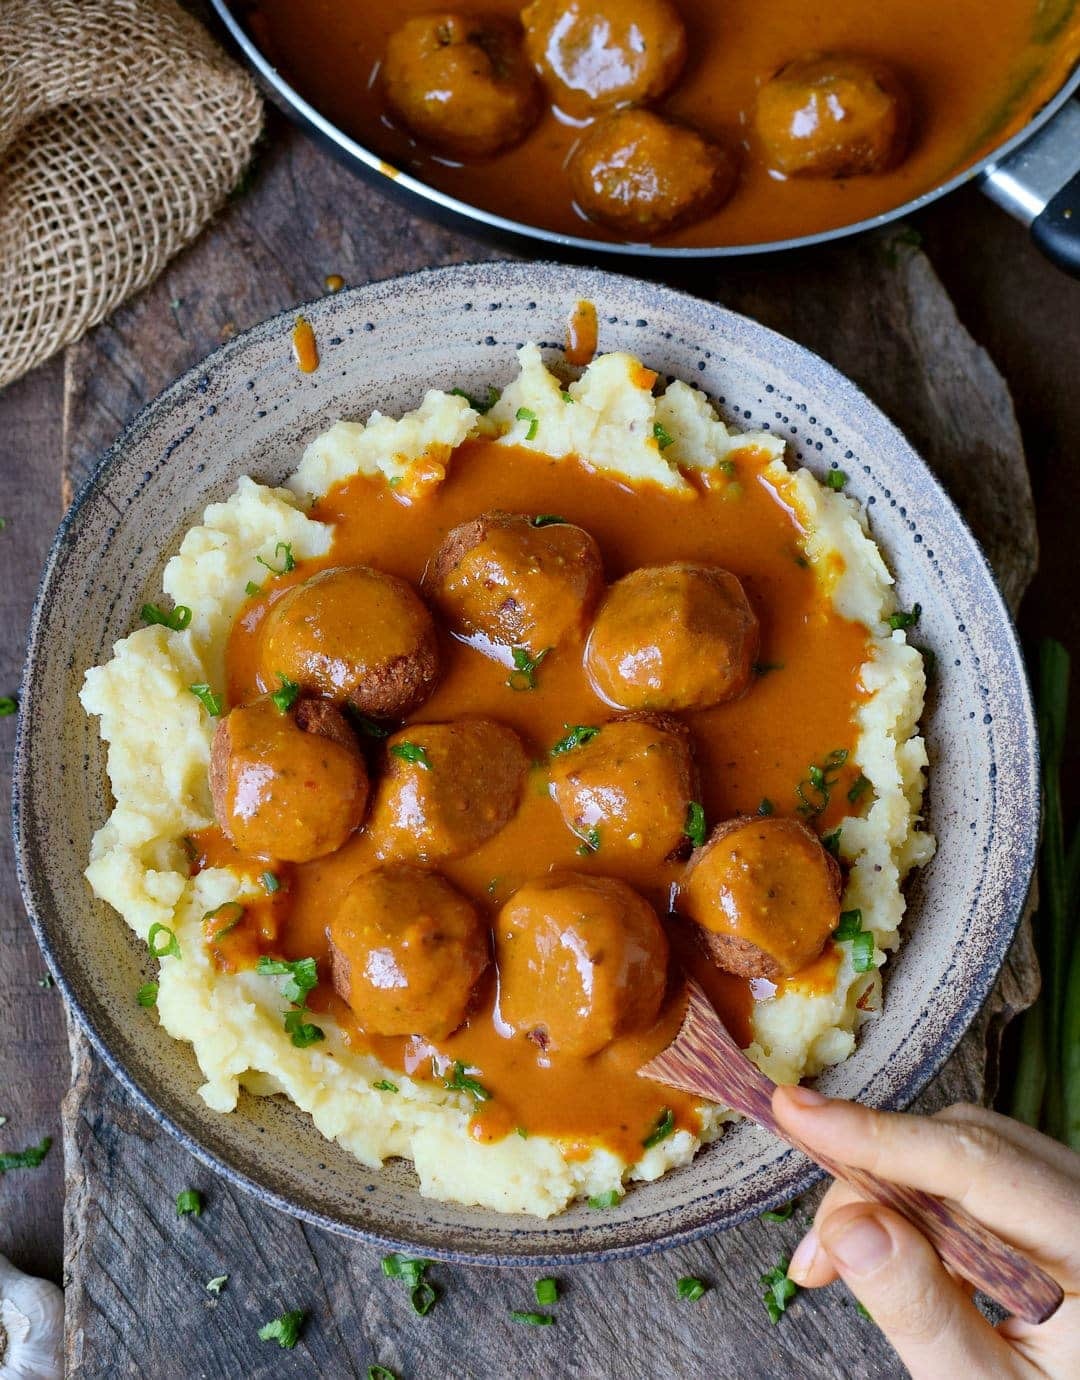 Eating gluten-free vegan meatballs with gravy and mash